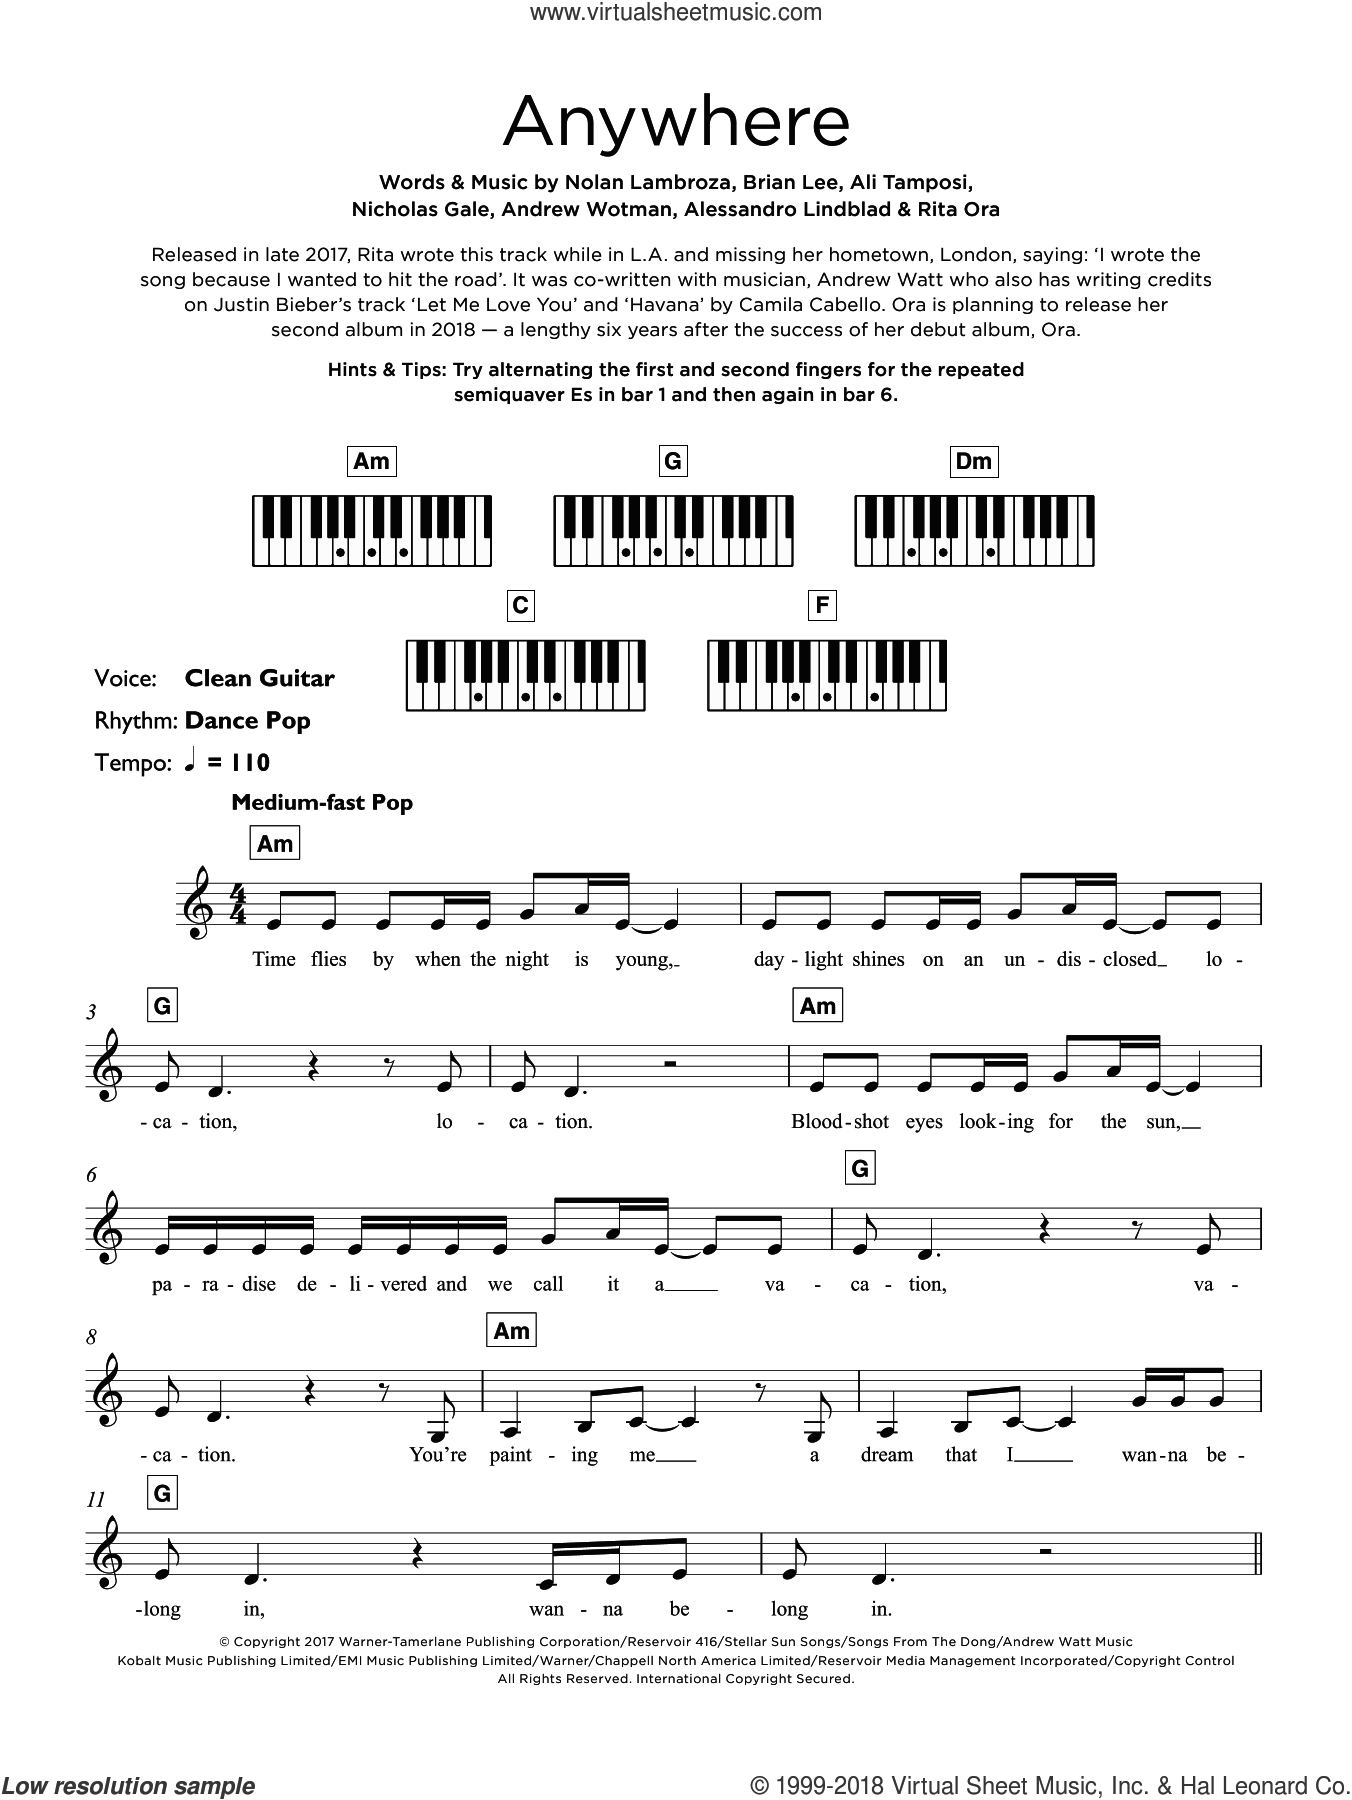 Anywhere sheet music for piano solo (keyboard) by Rita Ora, Alessandro Lindblad, Ali Tamposi, Andrew Wotman, Brian Lee, Nicholas Gale and Nolan Lambroza, intermediate piano (keyboard)